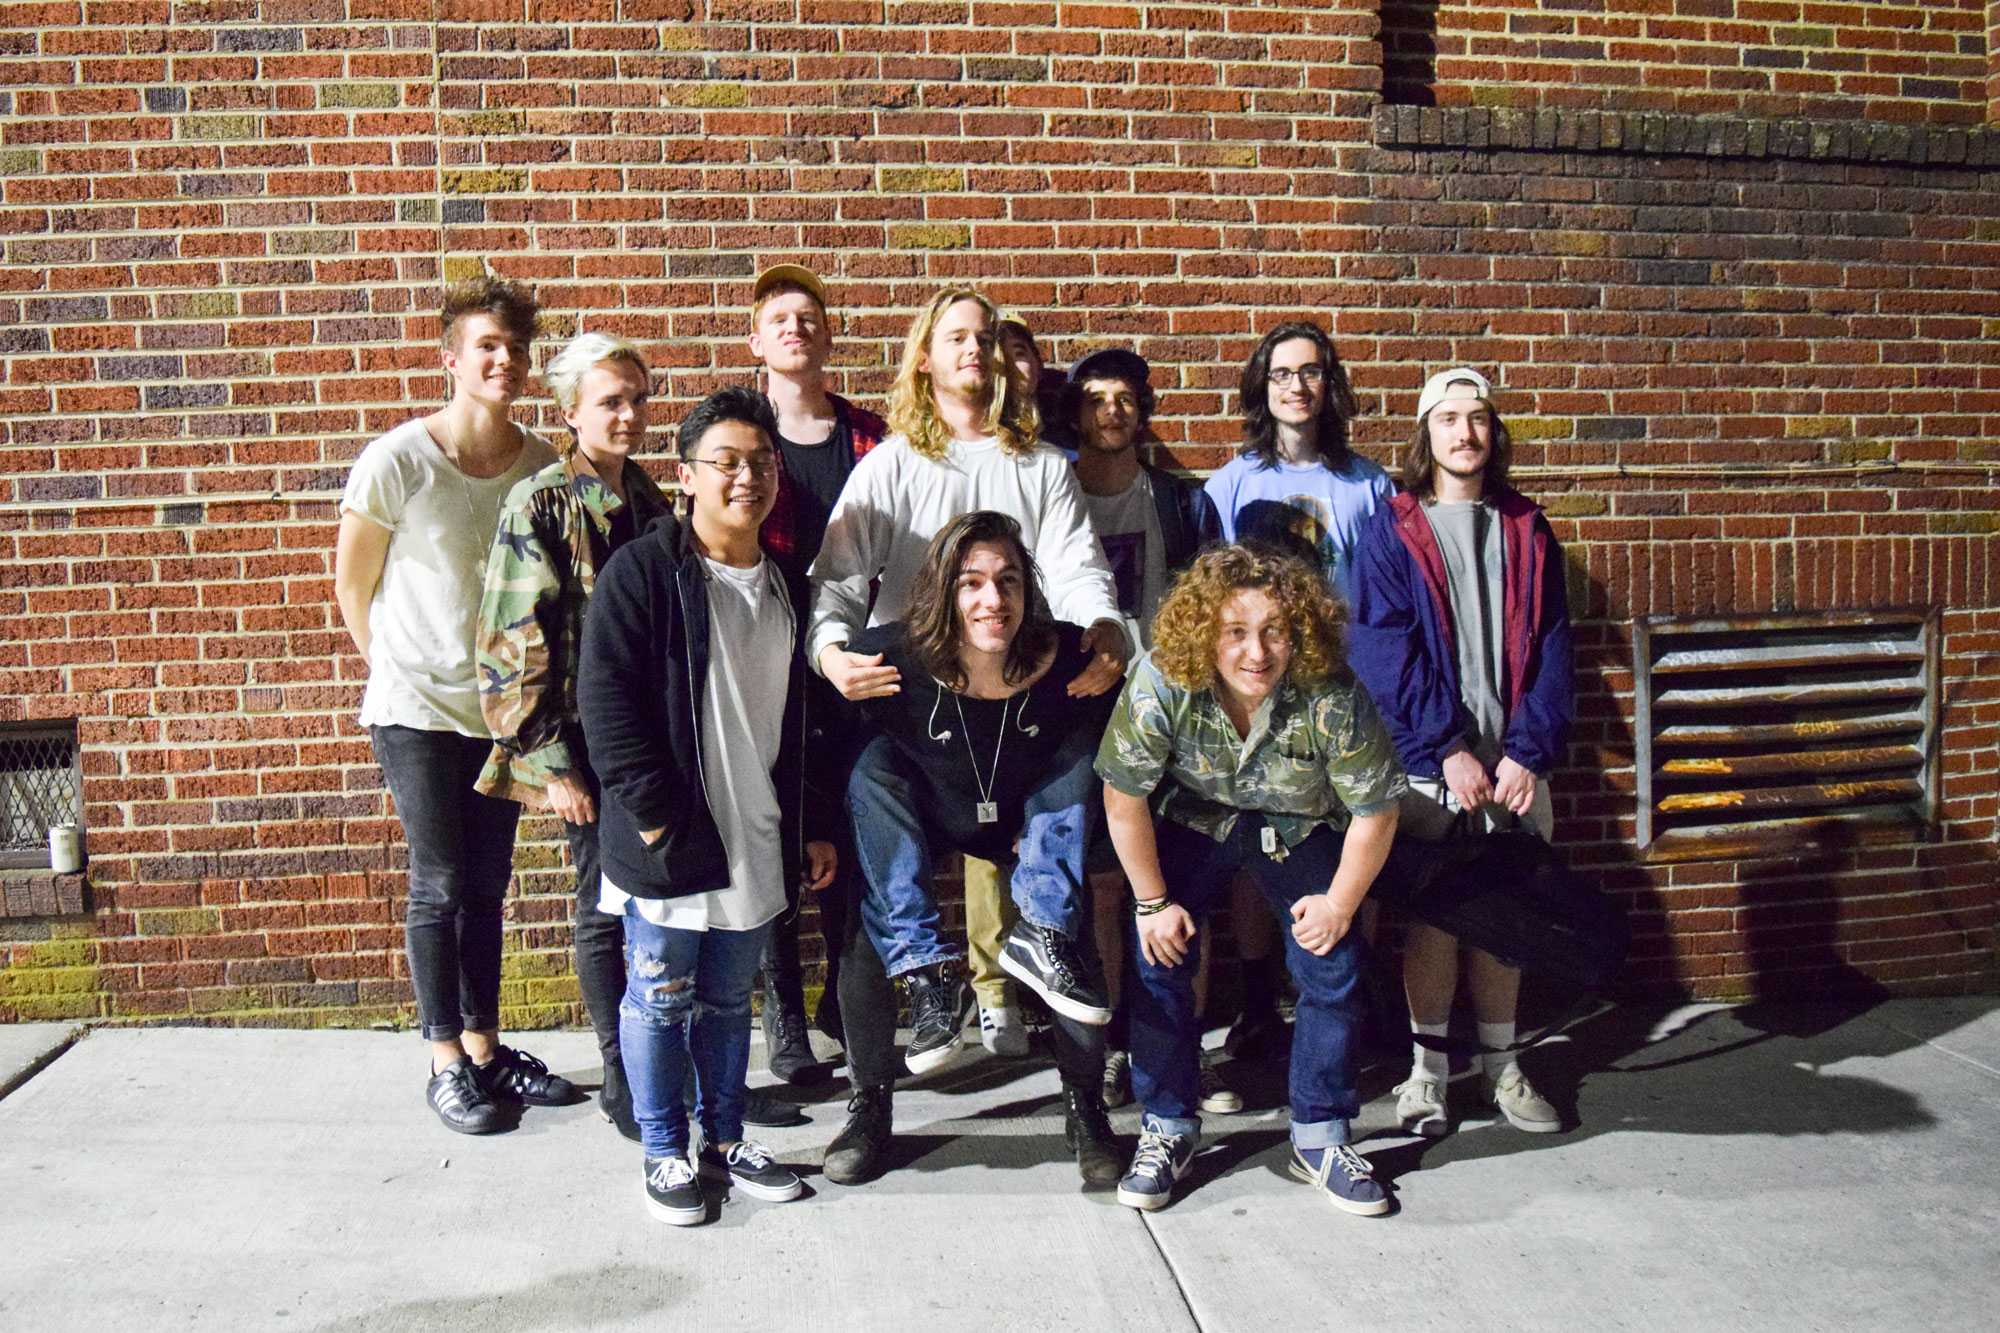 The two bands Electric Jelly Funk and Yugo pose for a group photo outside of Black Cat.